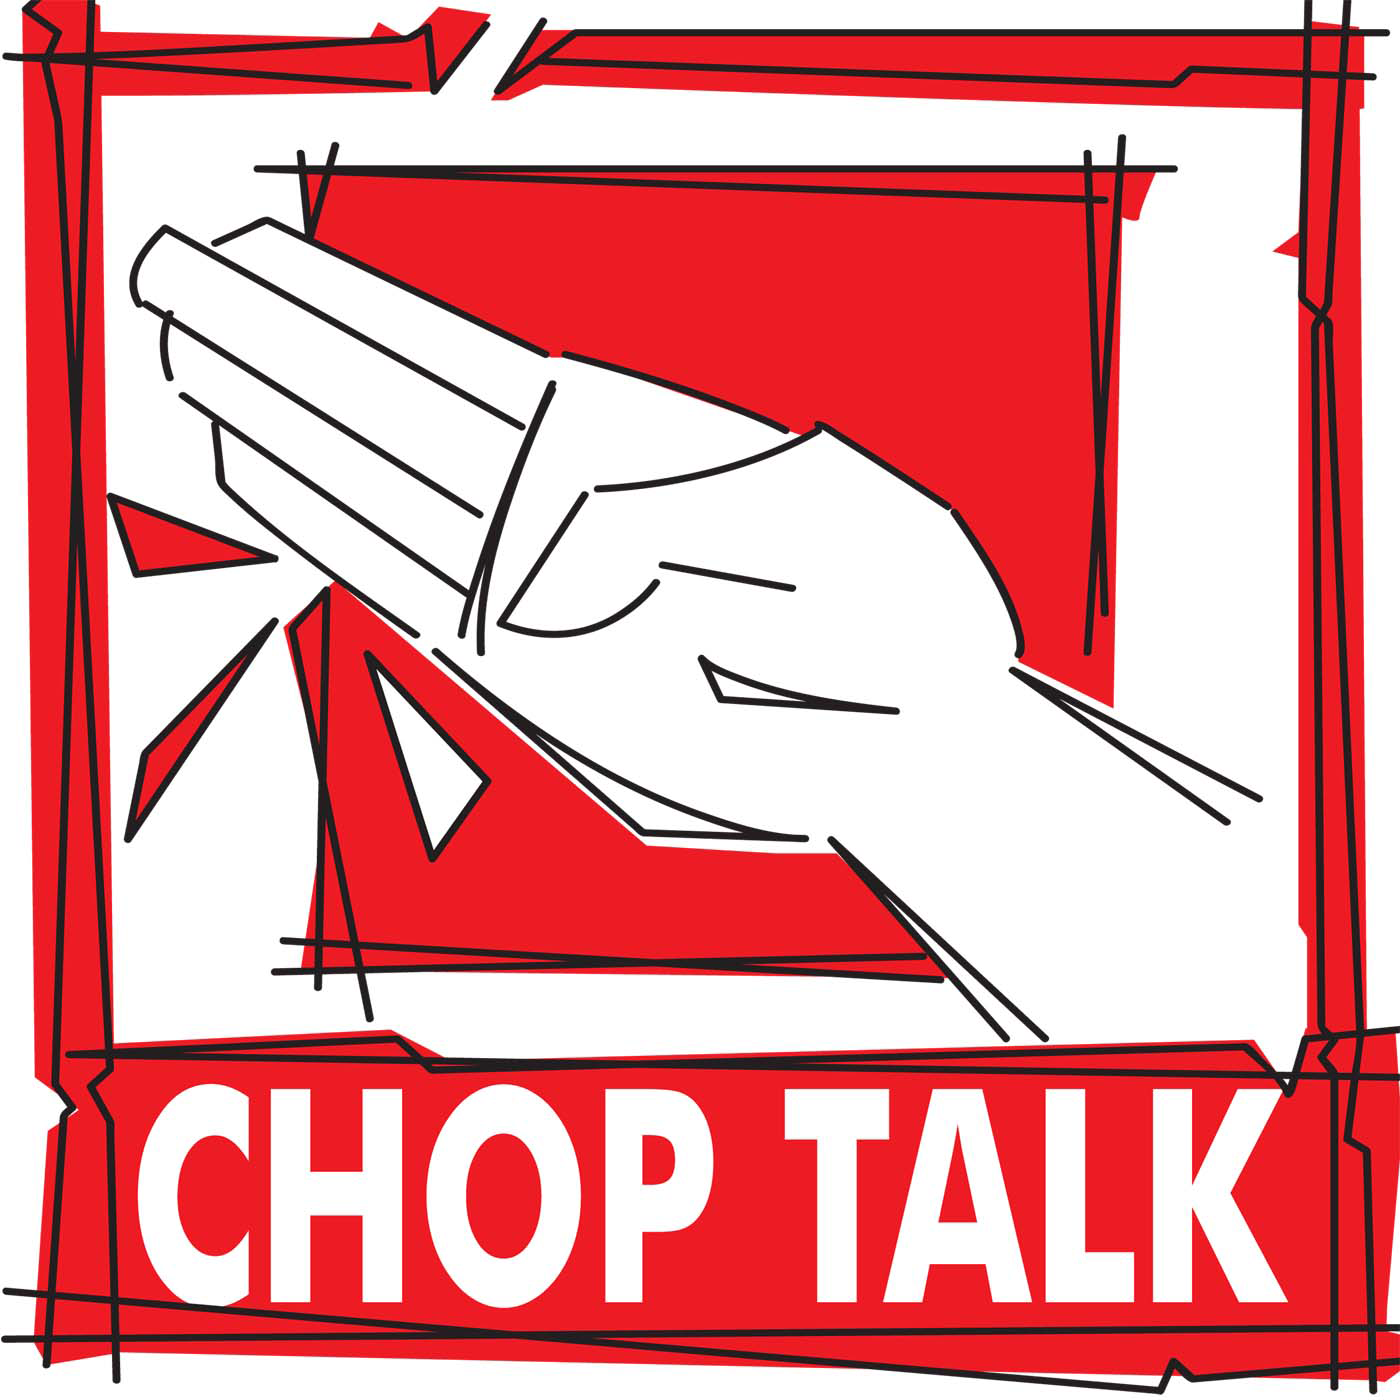 CHOP TALK: Karate | Martial Arts | Japanese Culture